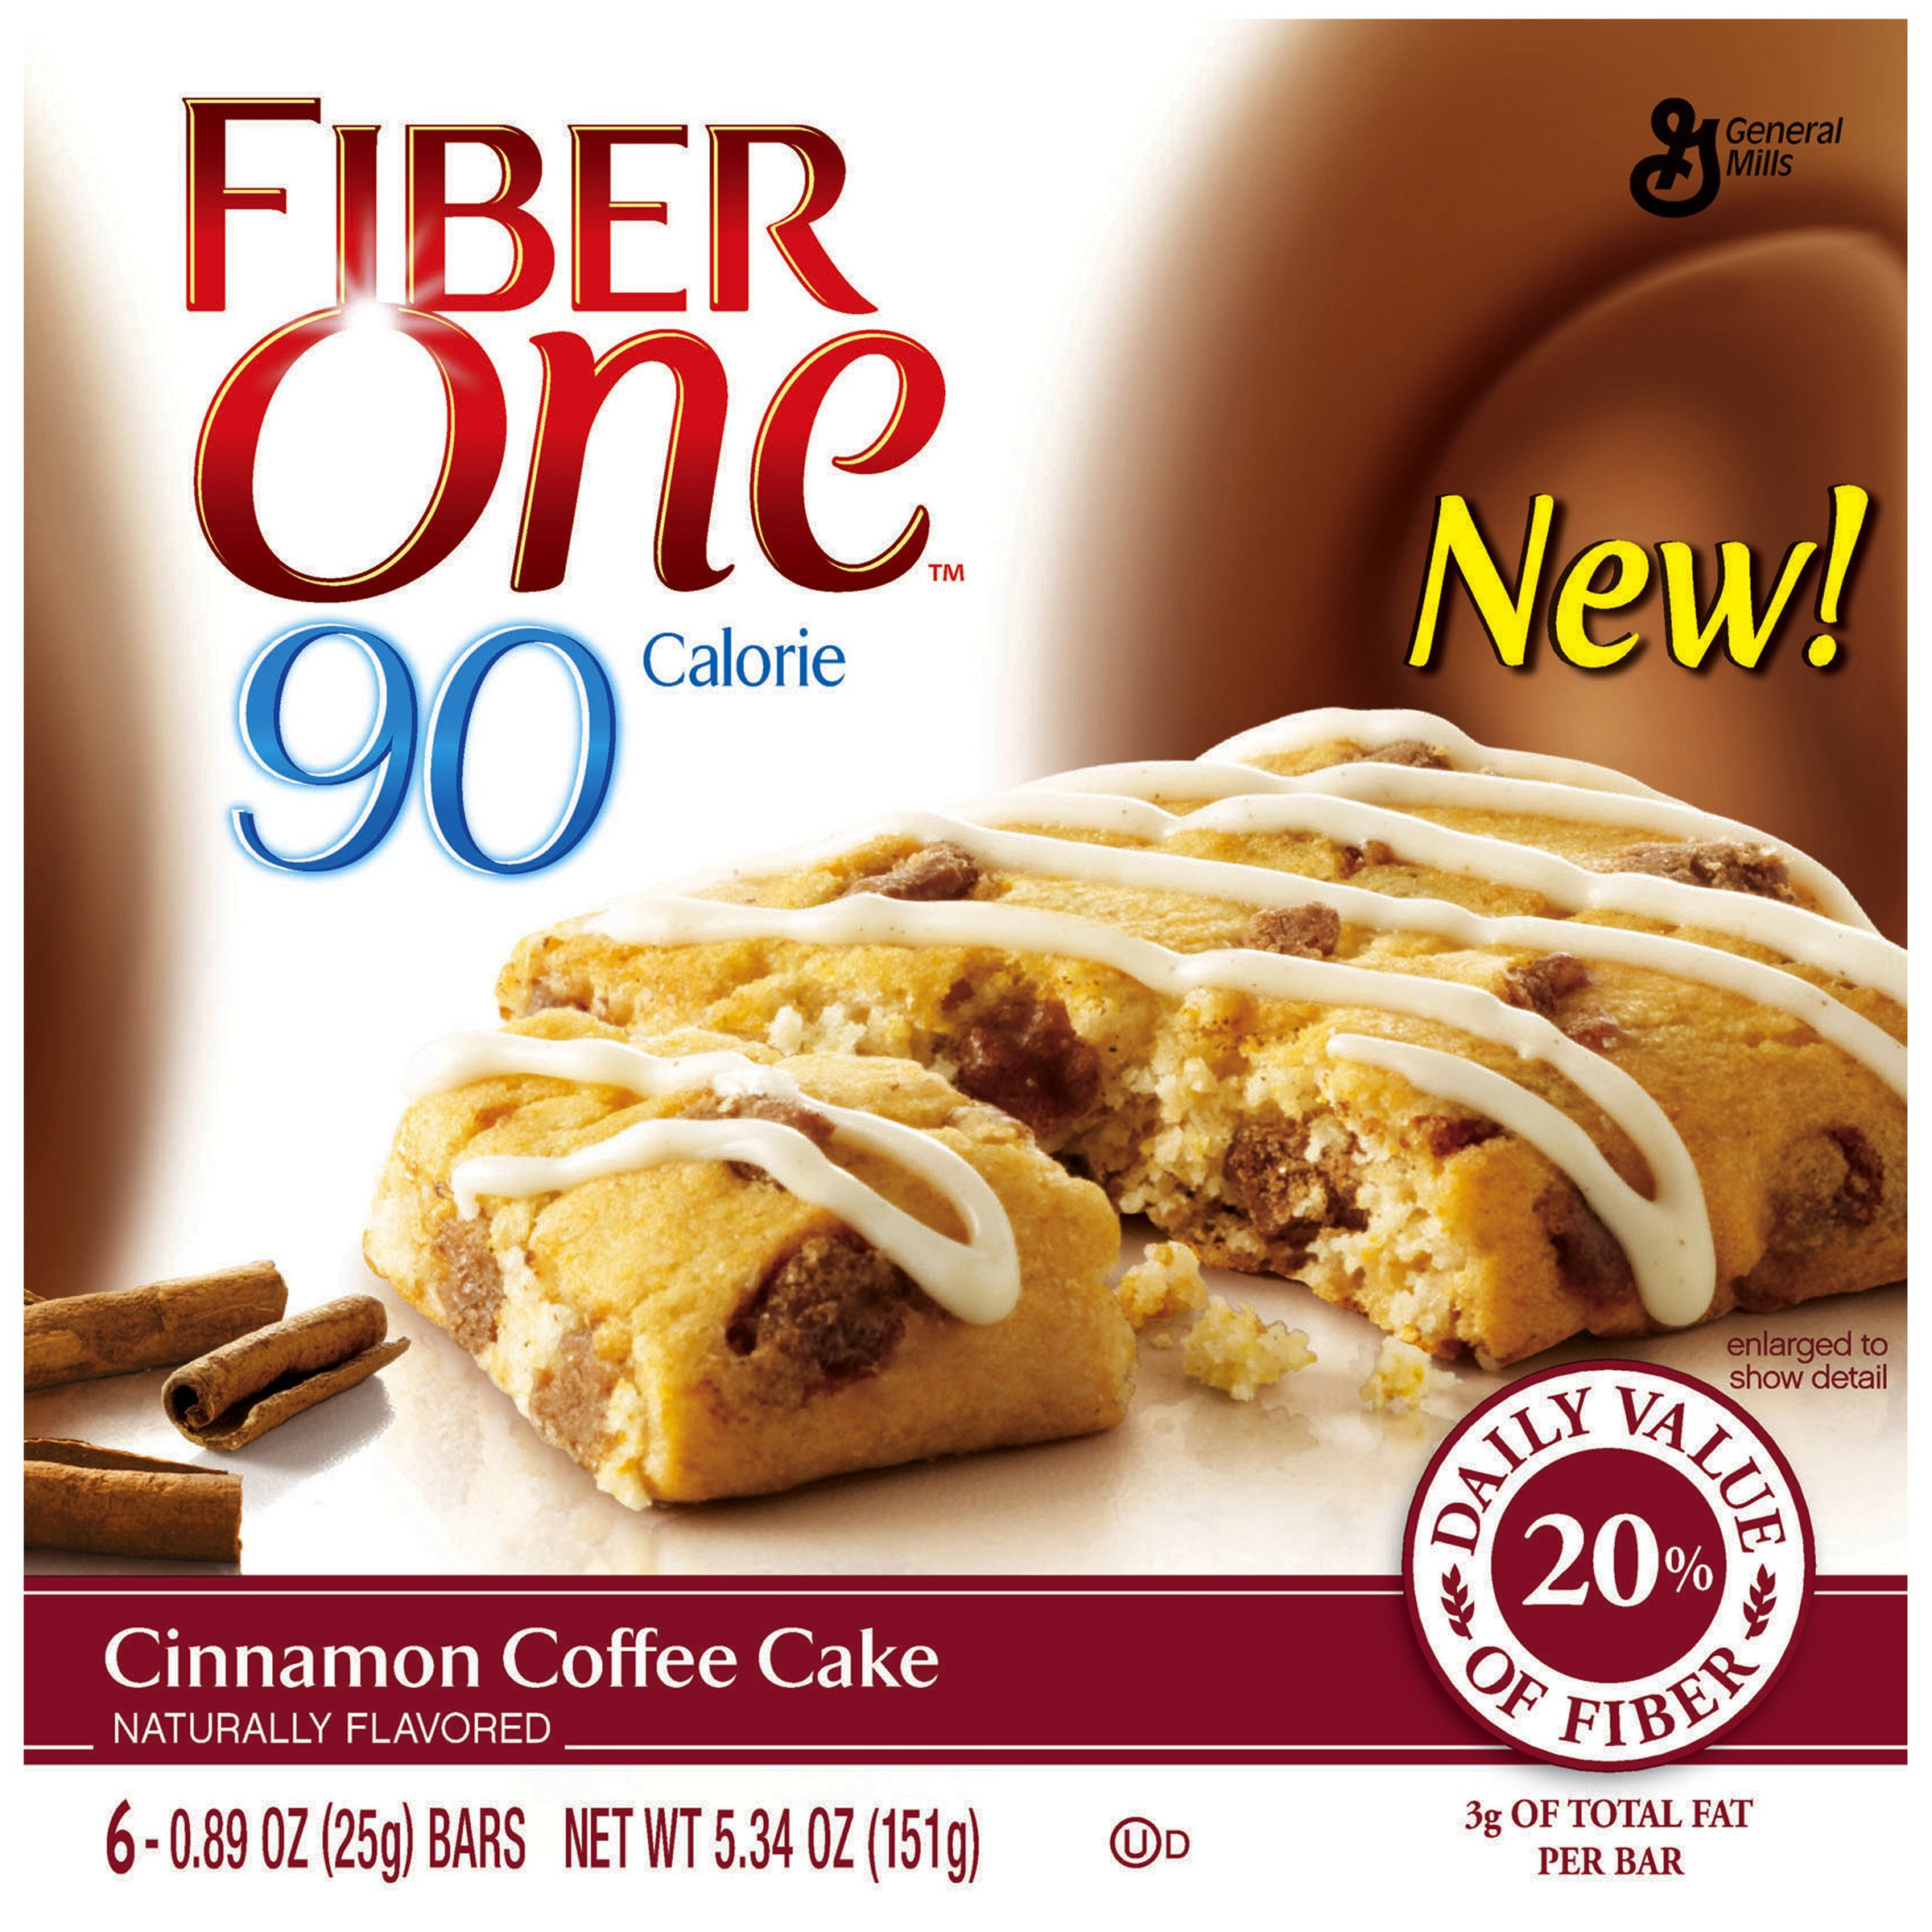 Fiber One 90 Calorie Bar, Cinnamon Coffee Cake, 6 Count 5.34 oz Boxes (Pack of 8)